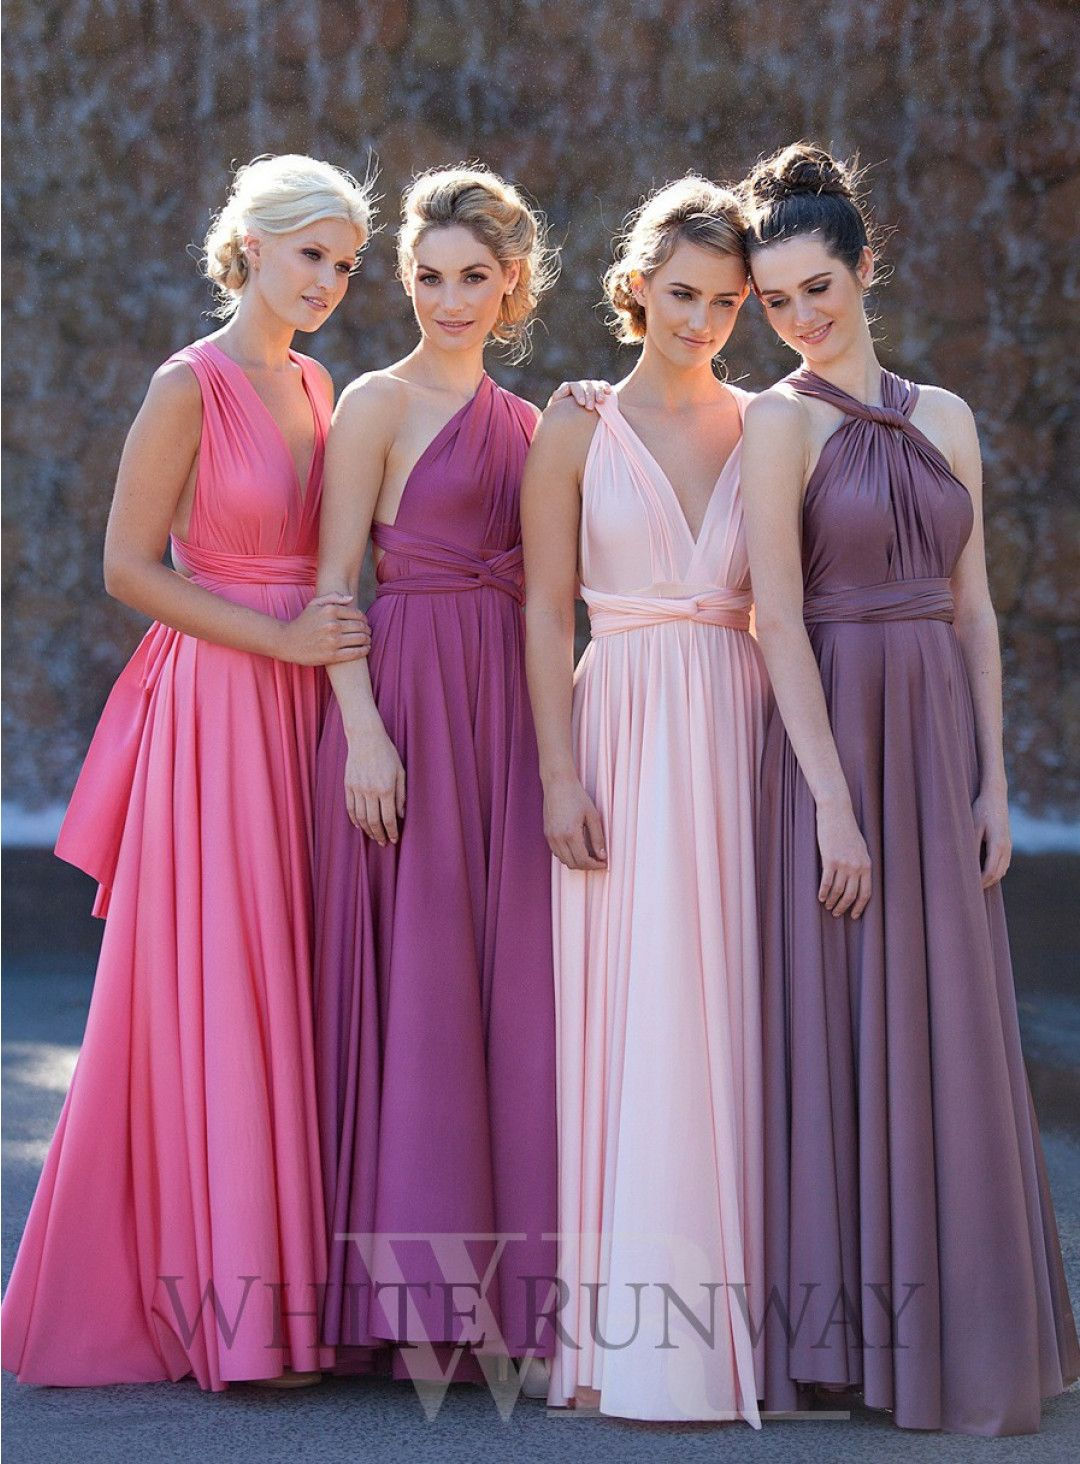 Multiway ballgown dress dresses are custom made to order so no